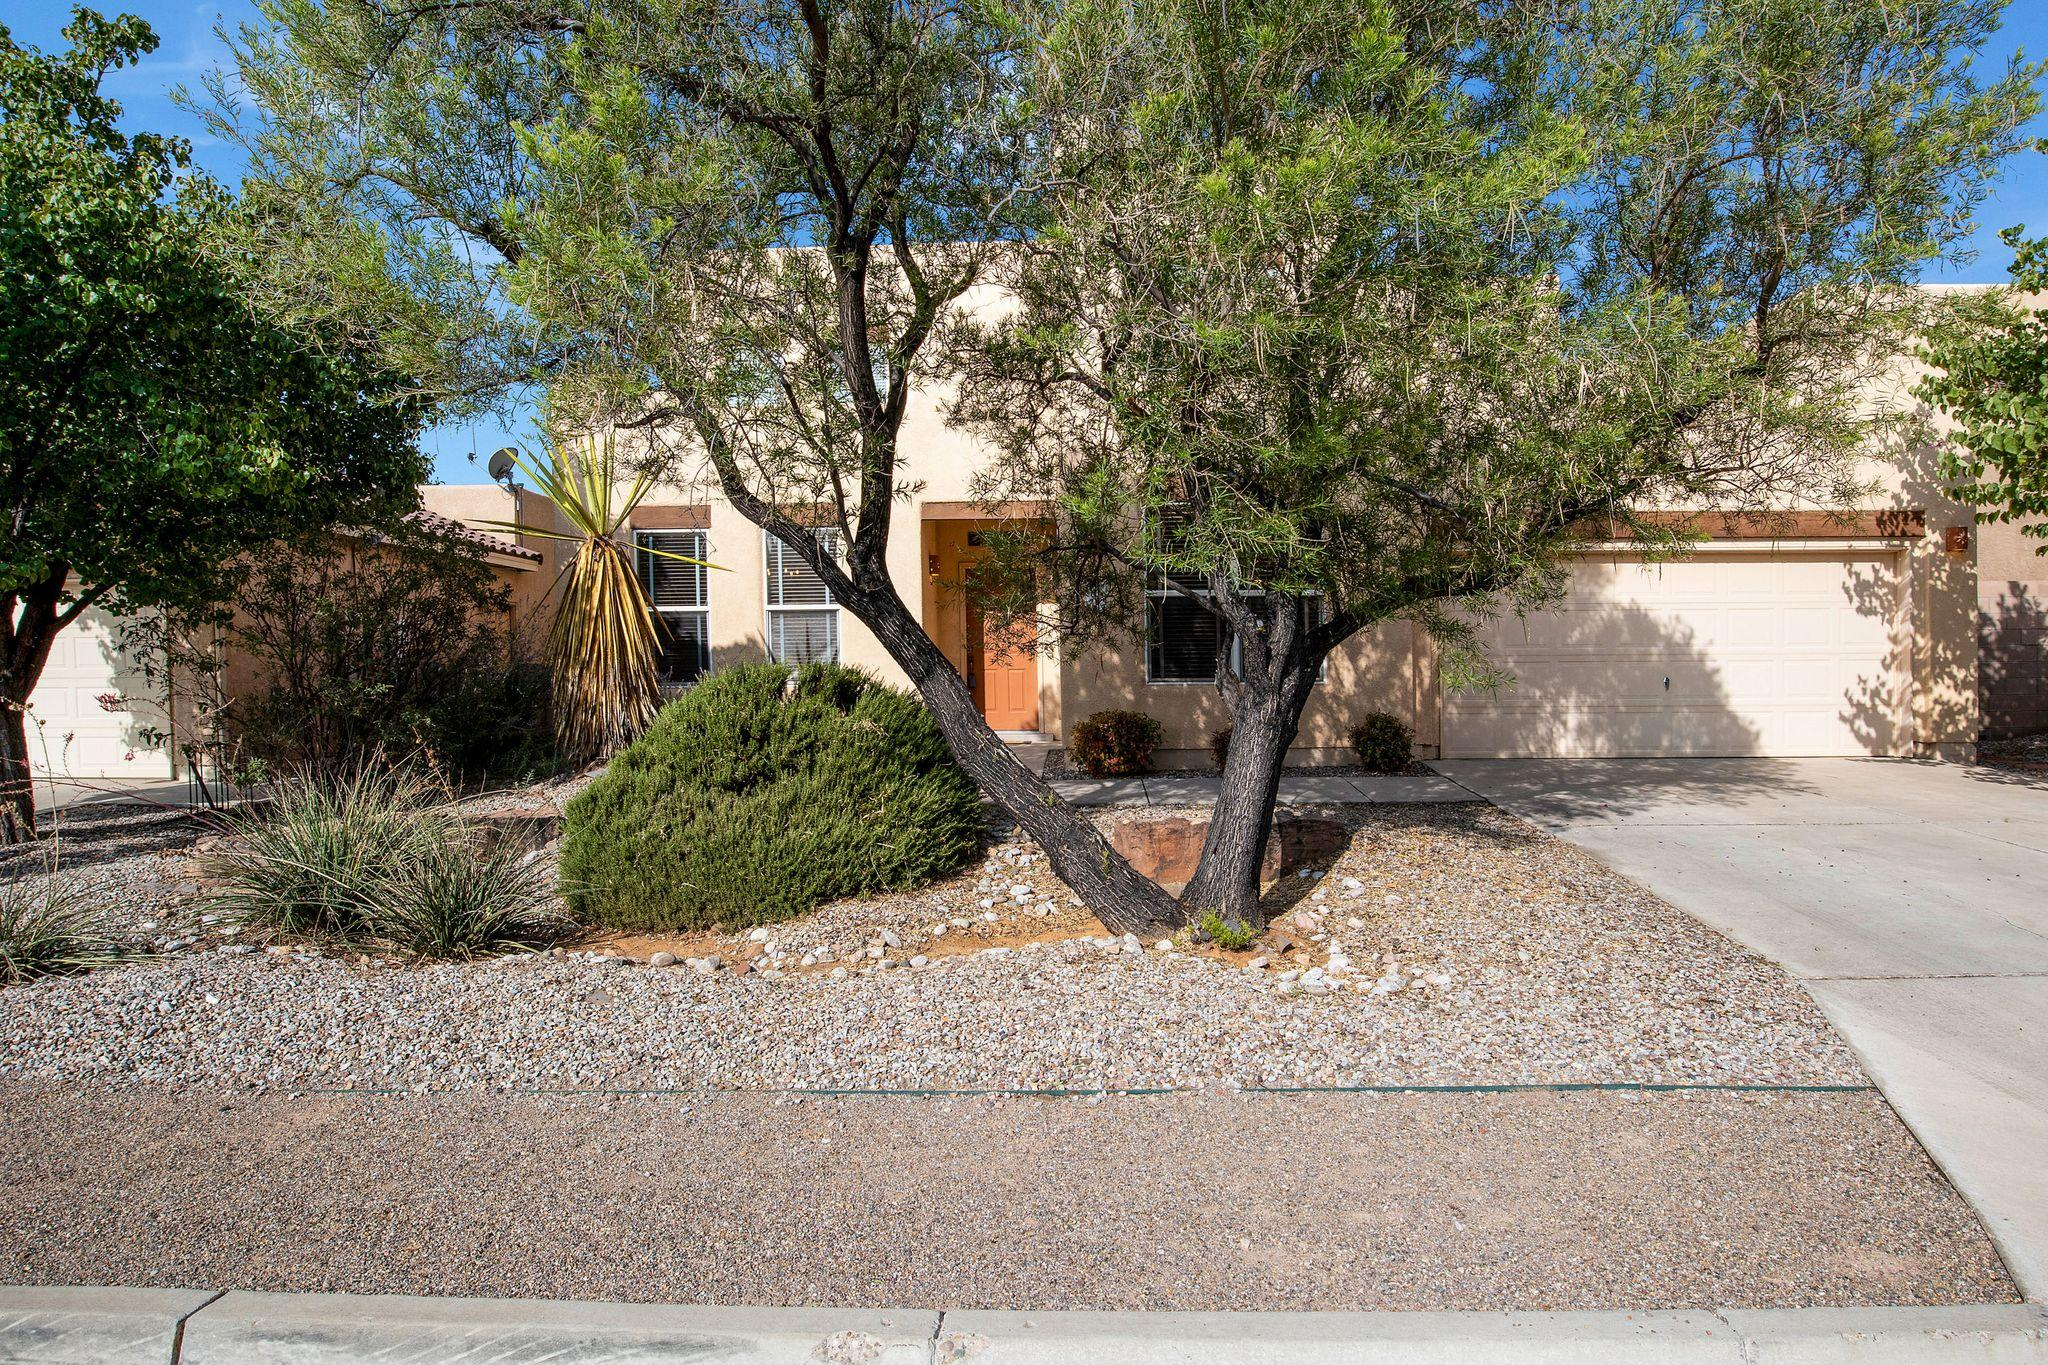 Welcome home to this beauty in the desirable Cottonwood Trails gated community! Great location with close access to shopping, bike and walking trails, and easy access to Paseo del Norte. This meticulously maintained 4/5 bedroom home offers a main floor master suite, formal dining room, and large office/family/game/5th bed room. Soaring tall ceilings with elongated windows and kiva fireplace are featured in the spacious living room. The kitchen offers dual ovens, cooktop stove, and ample counter space. Large Master Suite with a walk-in closet, master bath w/double sinks, garden tub and a stand alone shower. Cozy, enclosed back porch leads to the landscaped backyard complete with putting green! This one will not last long! Virtual and Video tours available!